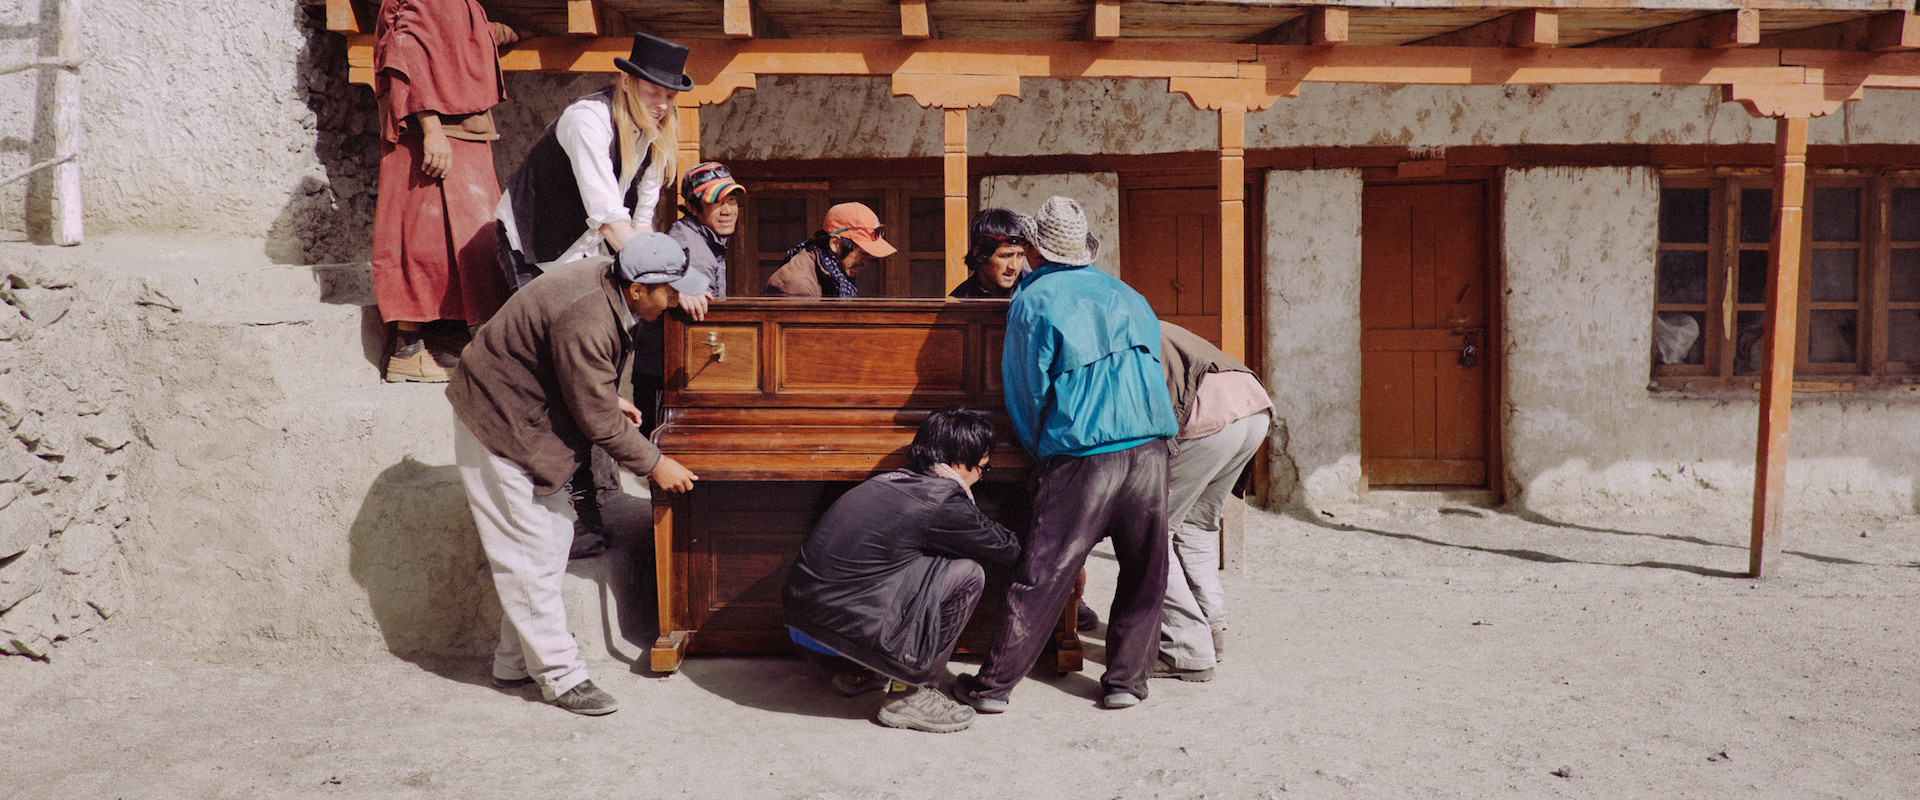 piano to zanskar vimff bkground